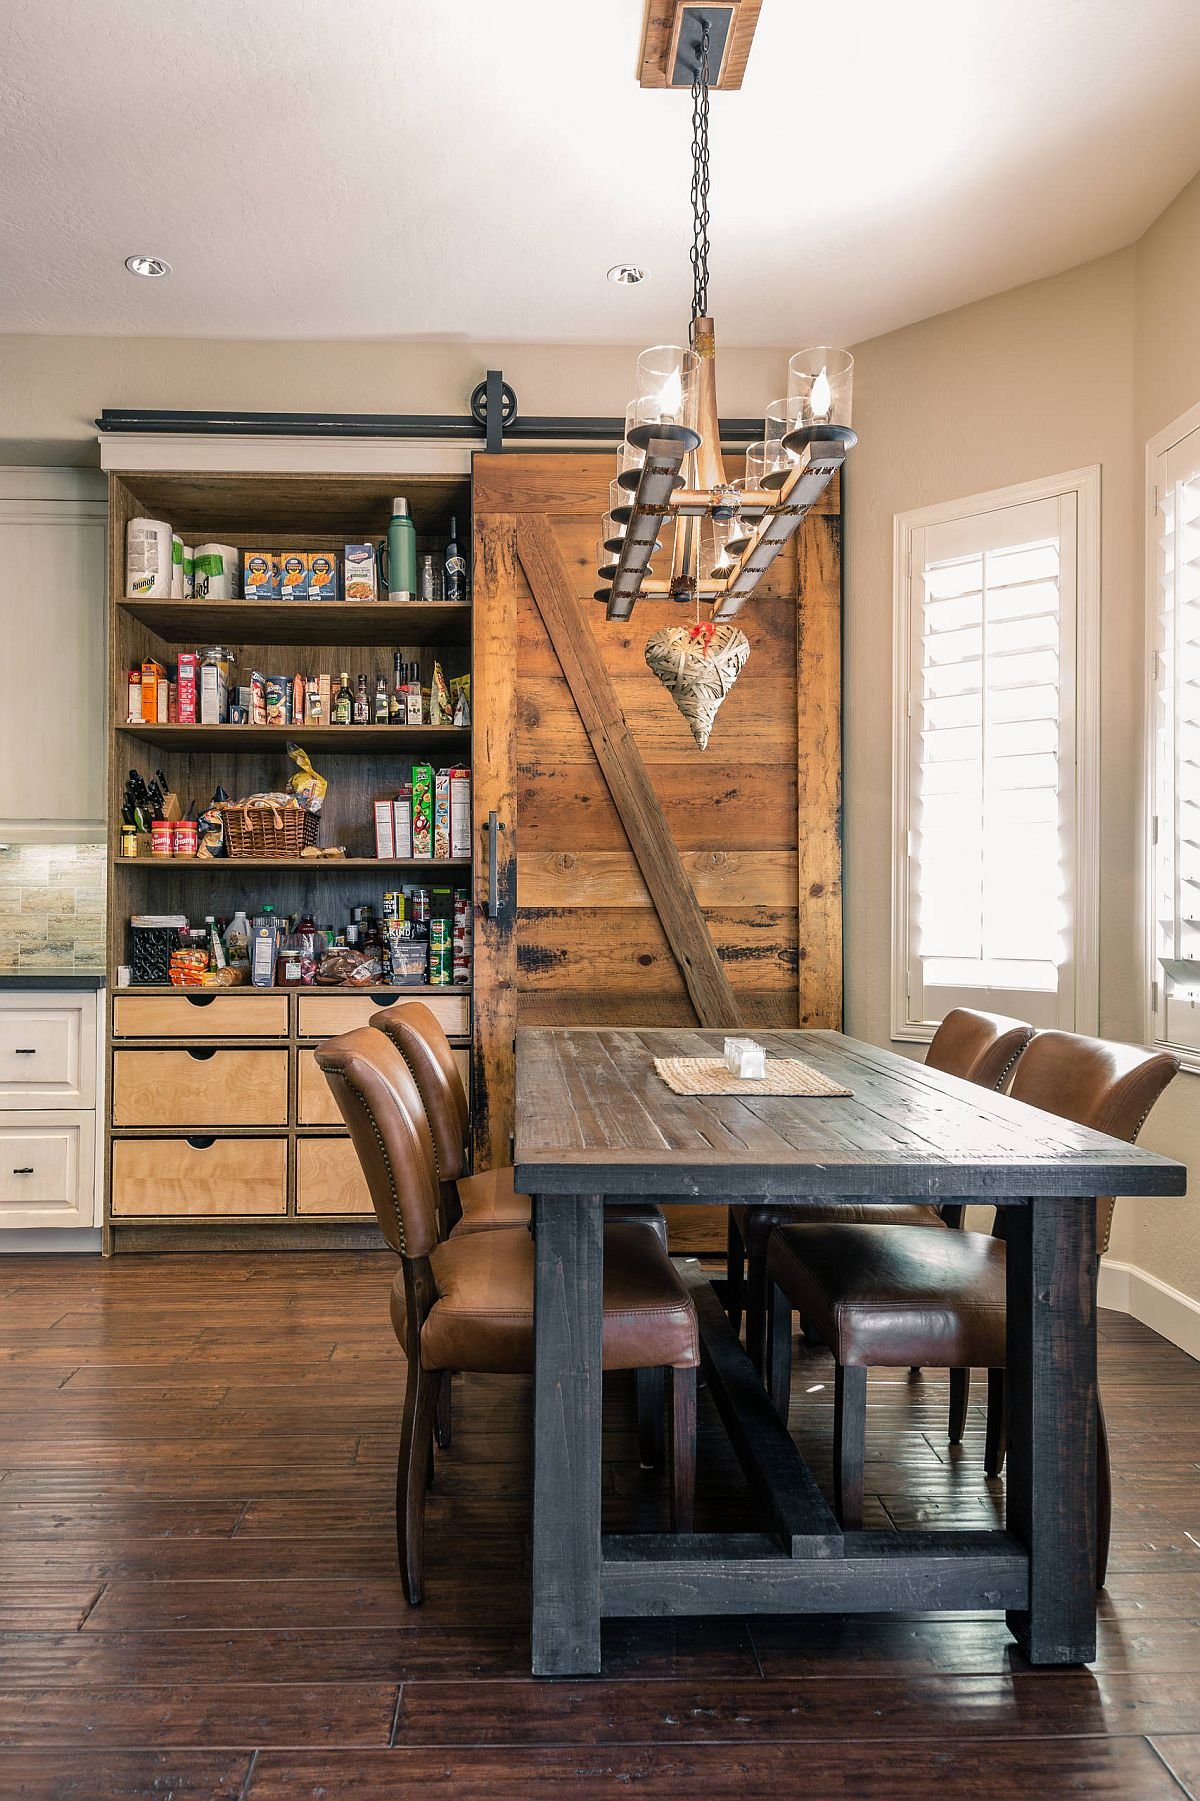 Sliding barn style door is just perfect for the industrial-farmhouse style kitchen